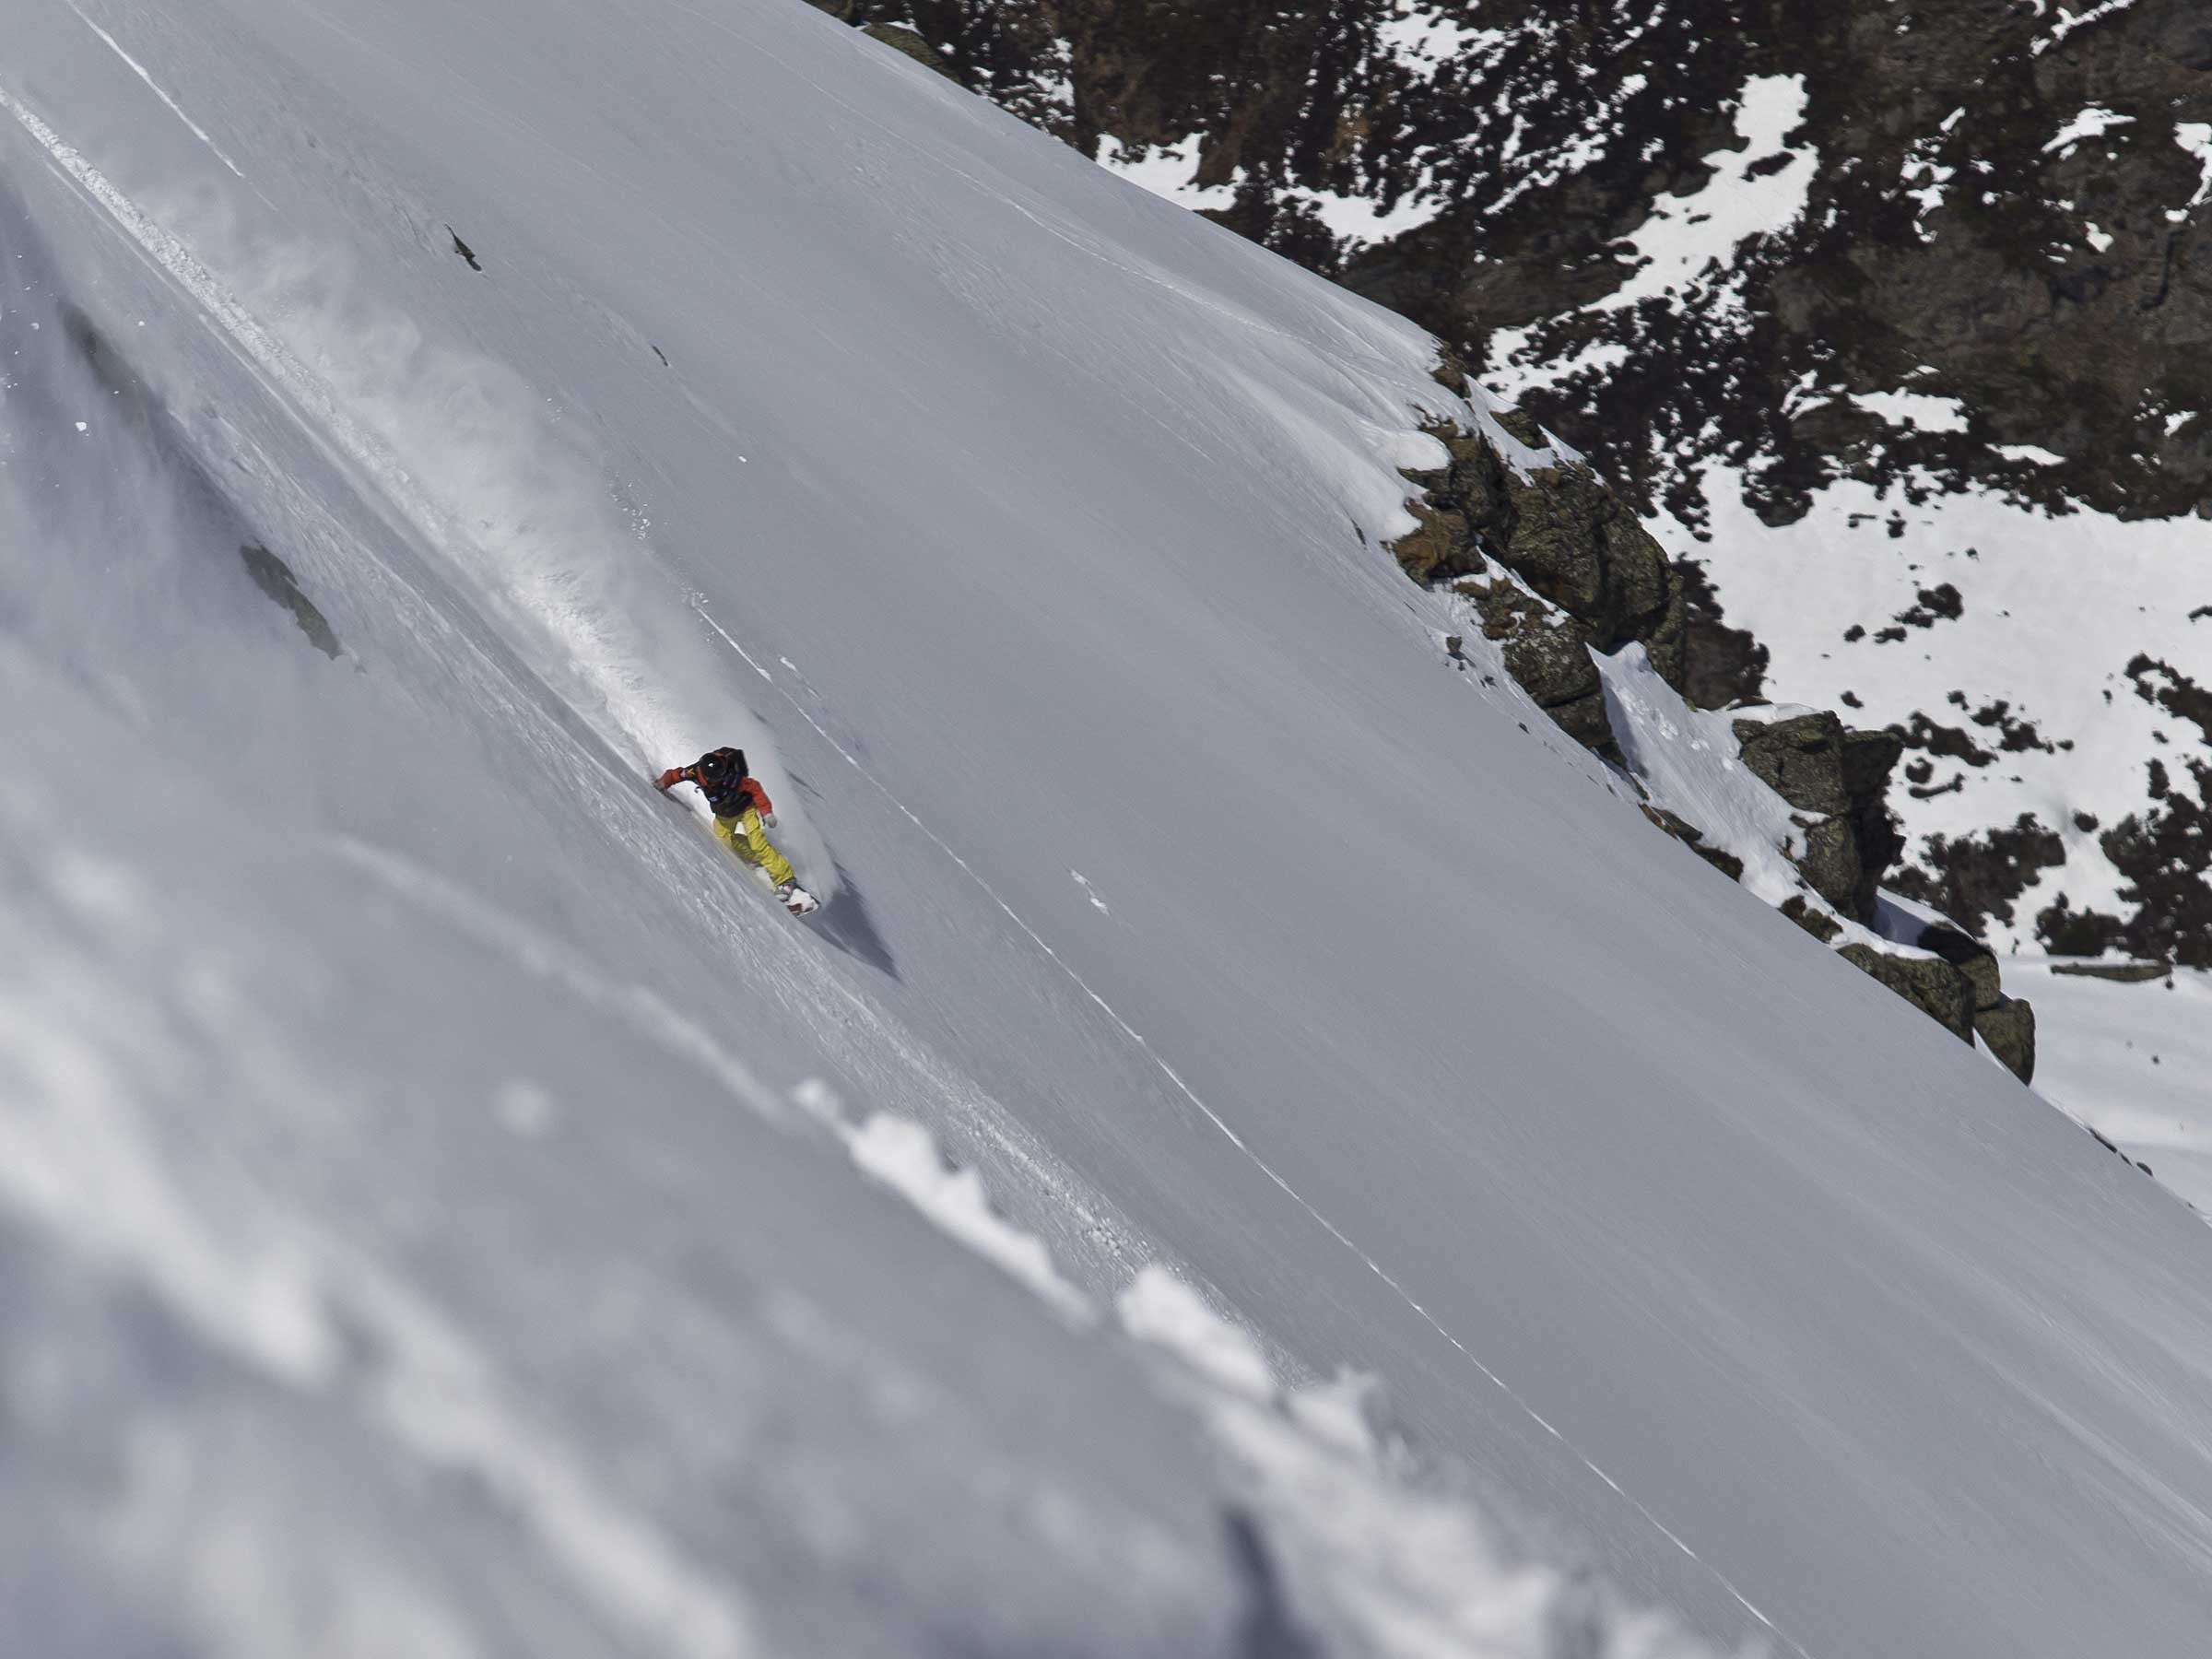 Turn Snowboarder im Powder - Open Faces Obergurgl-Hochgurgl